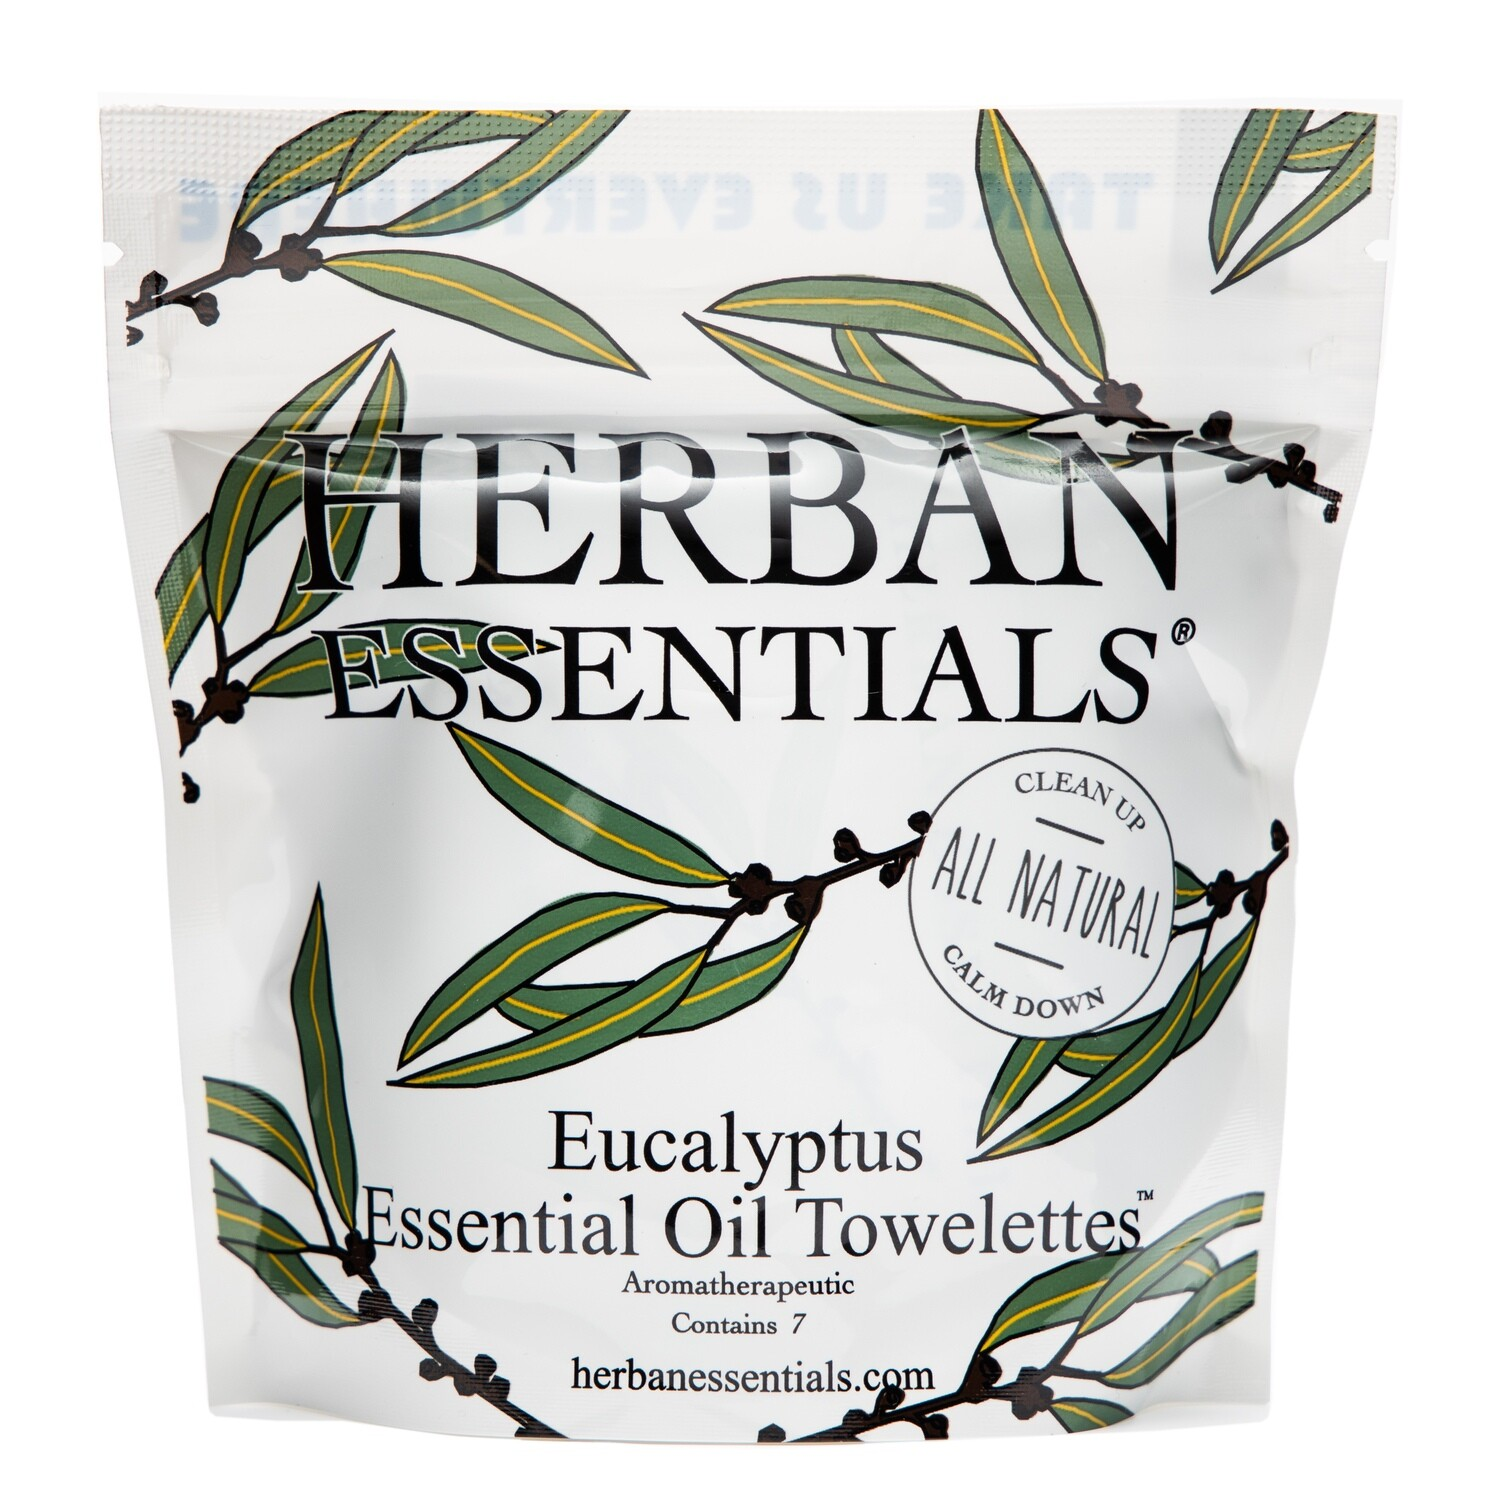 Eucalyptus - Clean your hands. Inhale for congestion relief. Rub on sore muscles.